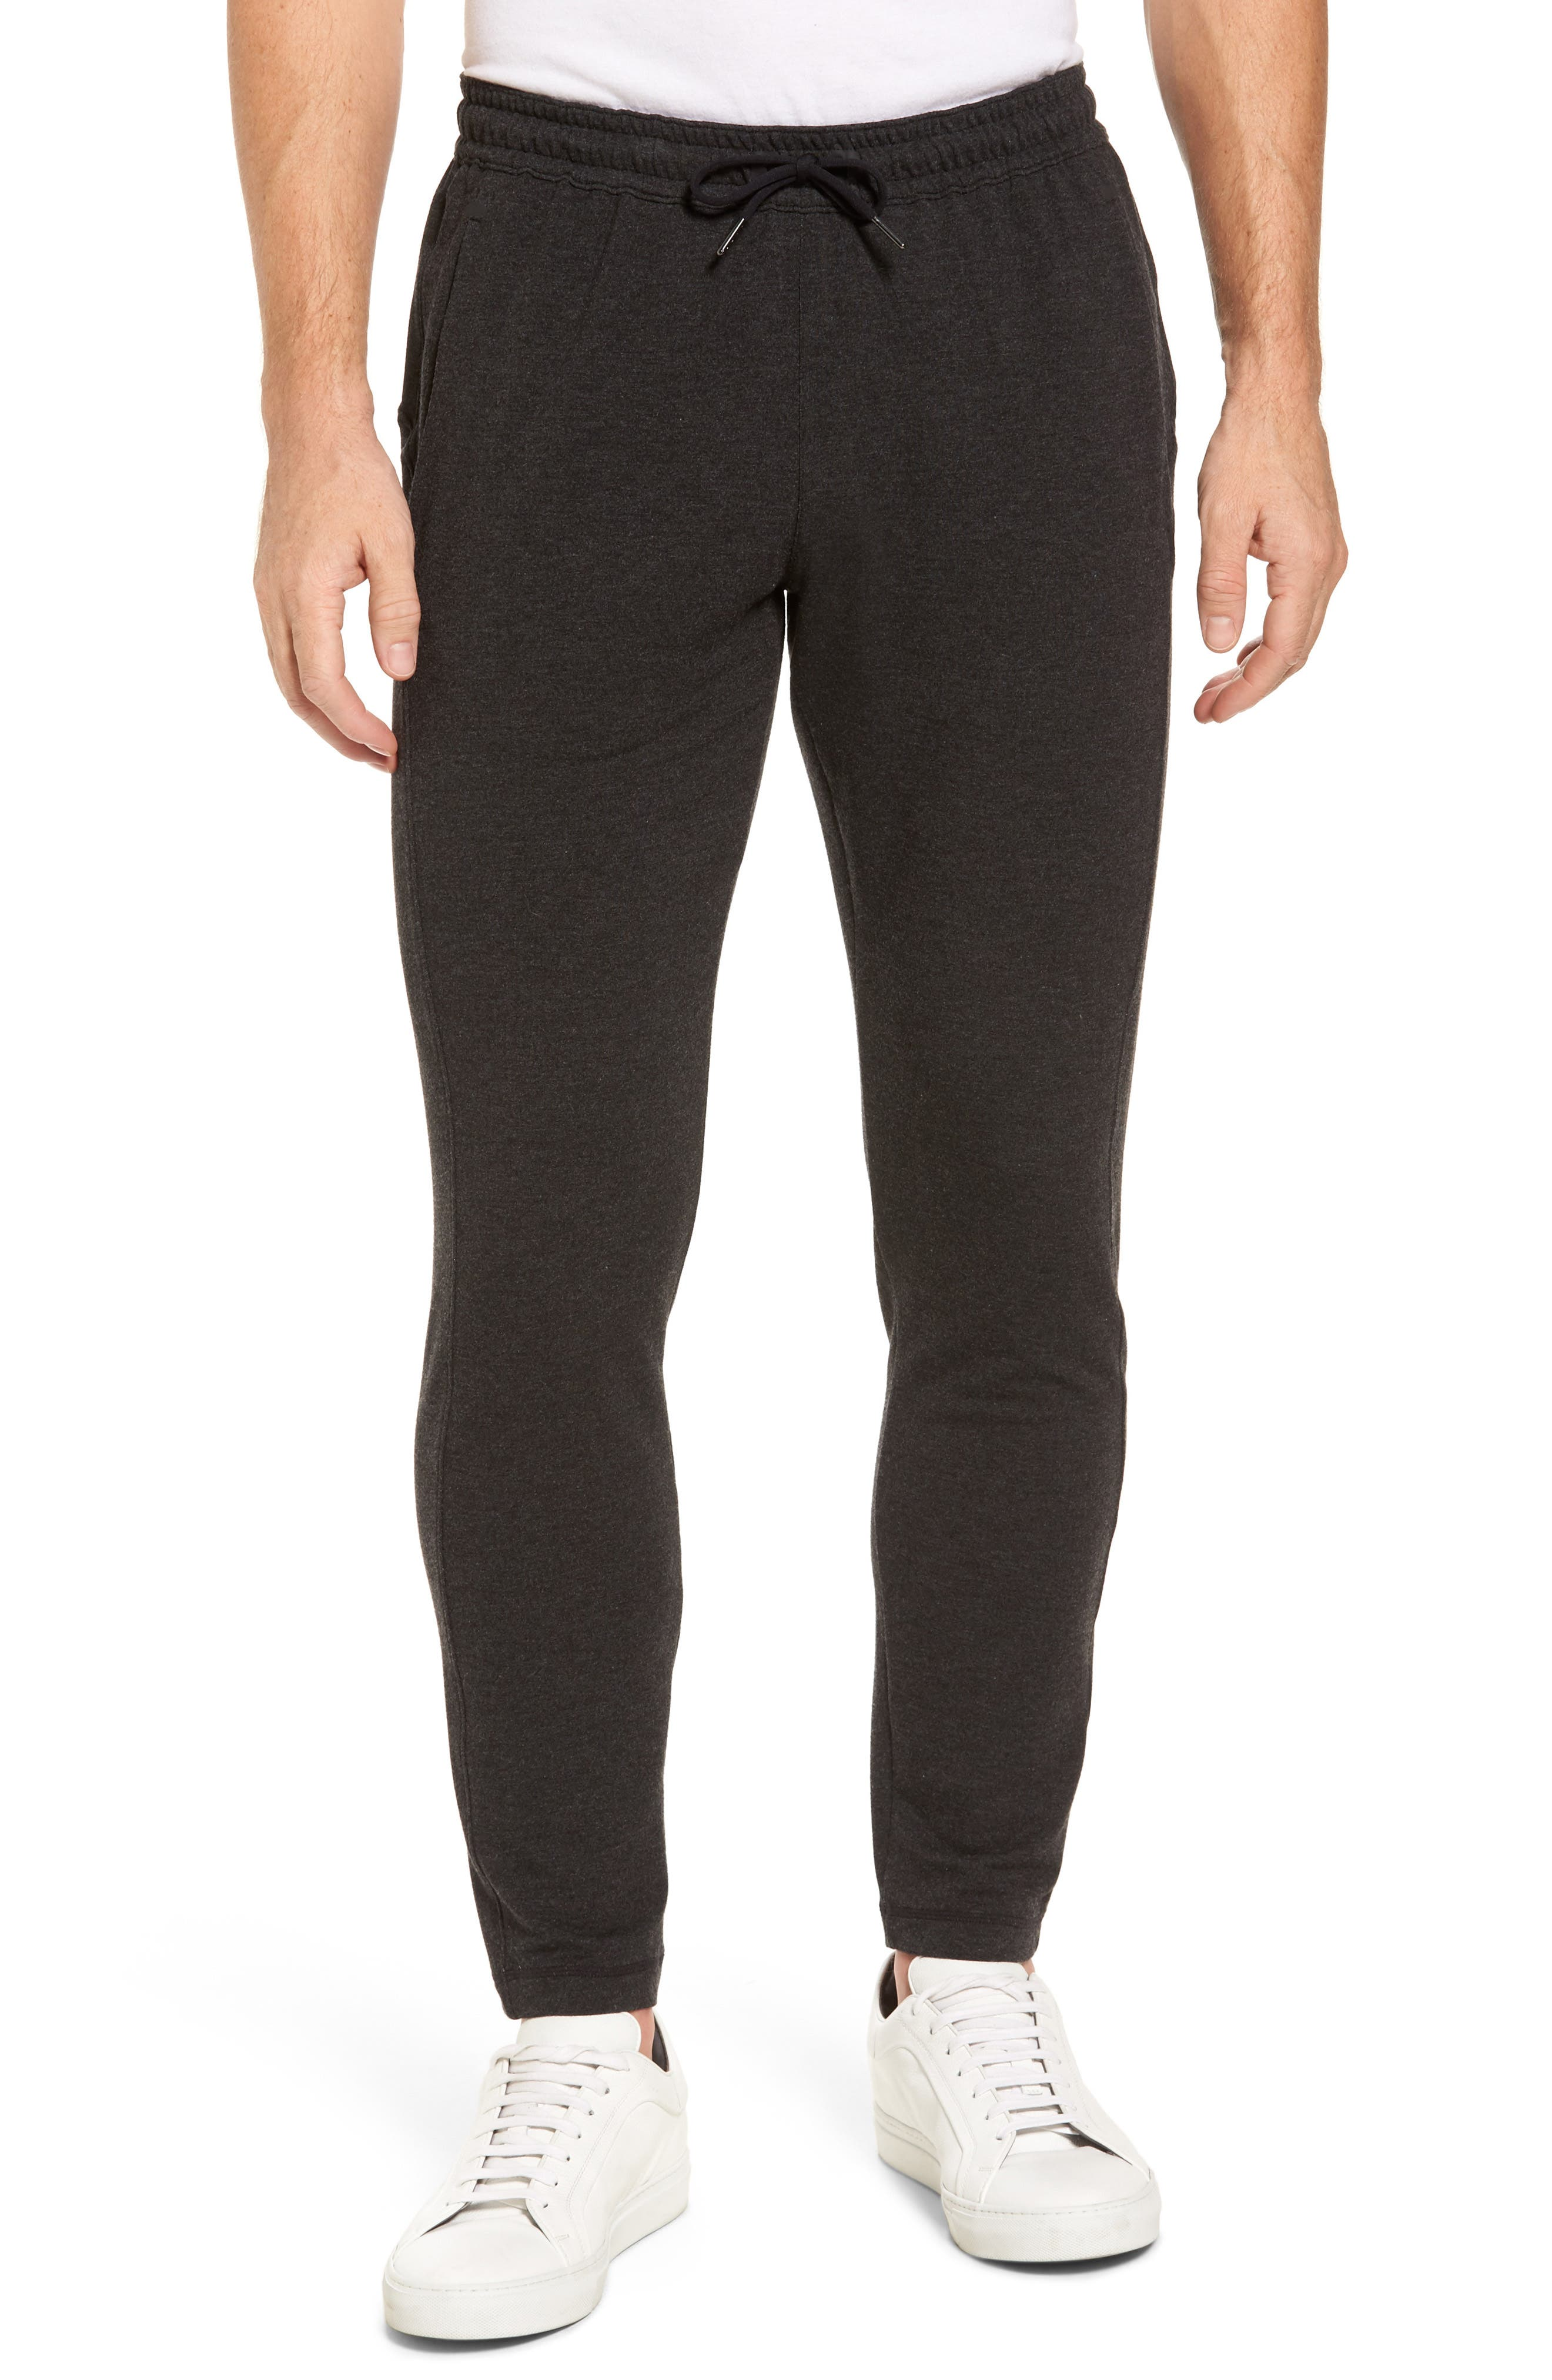 Main Image - Zella New Pyrite Tapered Fit Fleece Pants